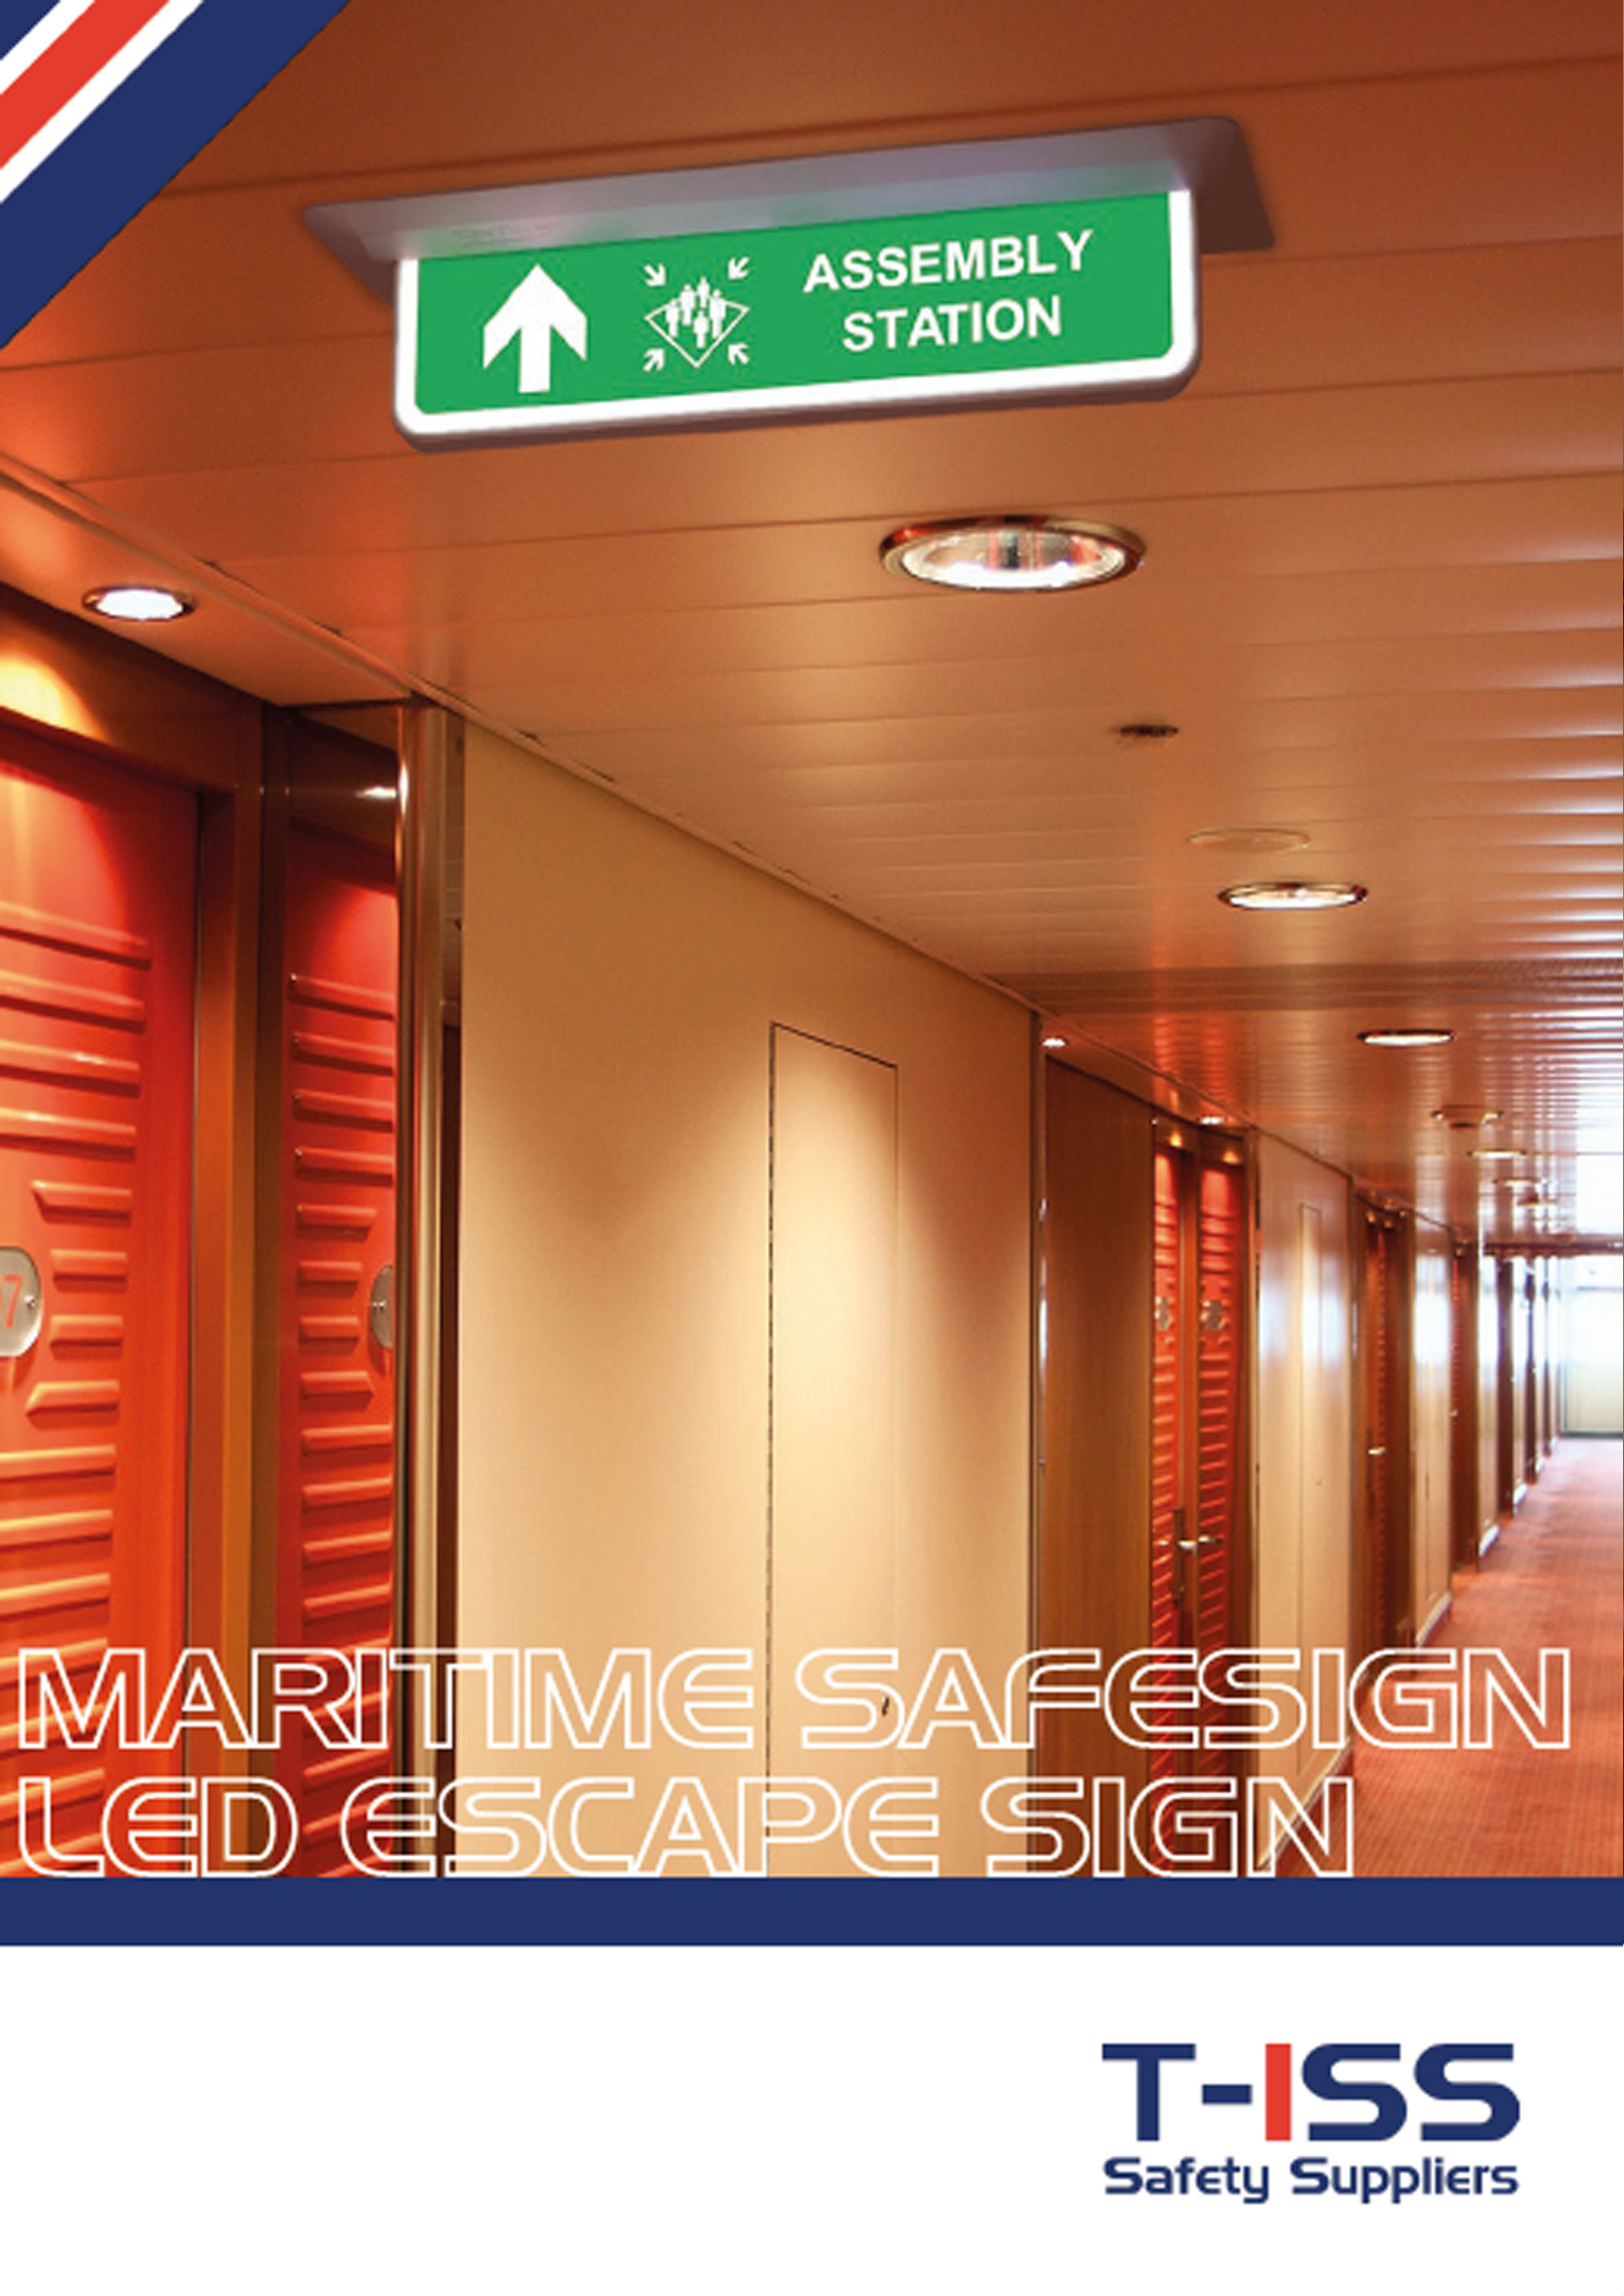 Flyer SafeSign LED Escape Sign Maritime by T-ISS Safety Suppliers